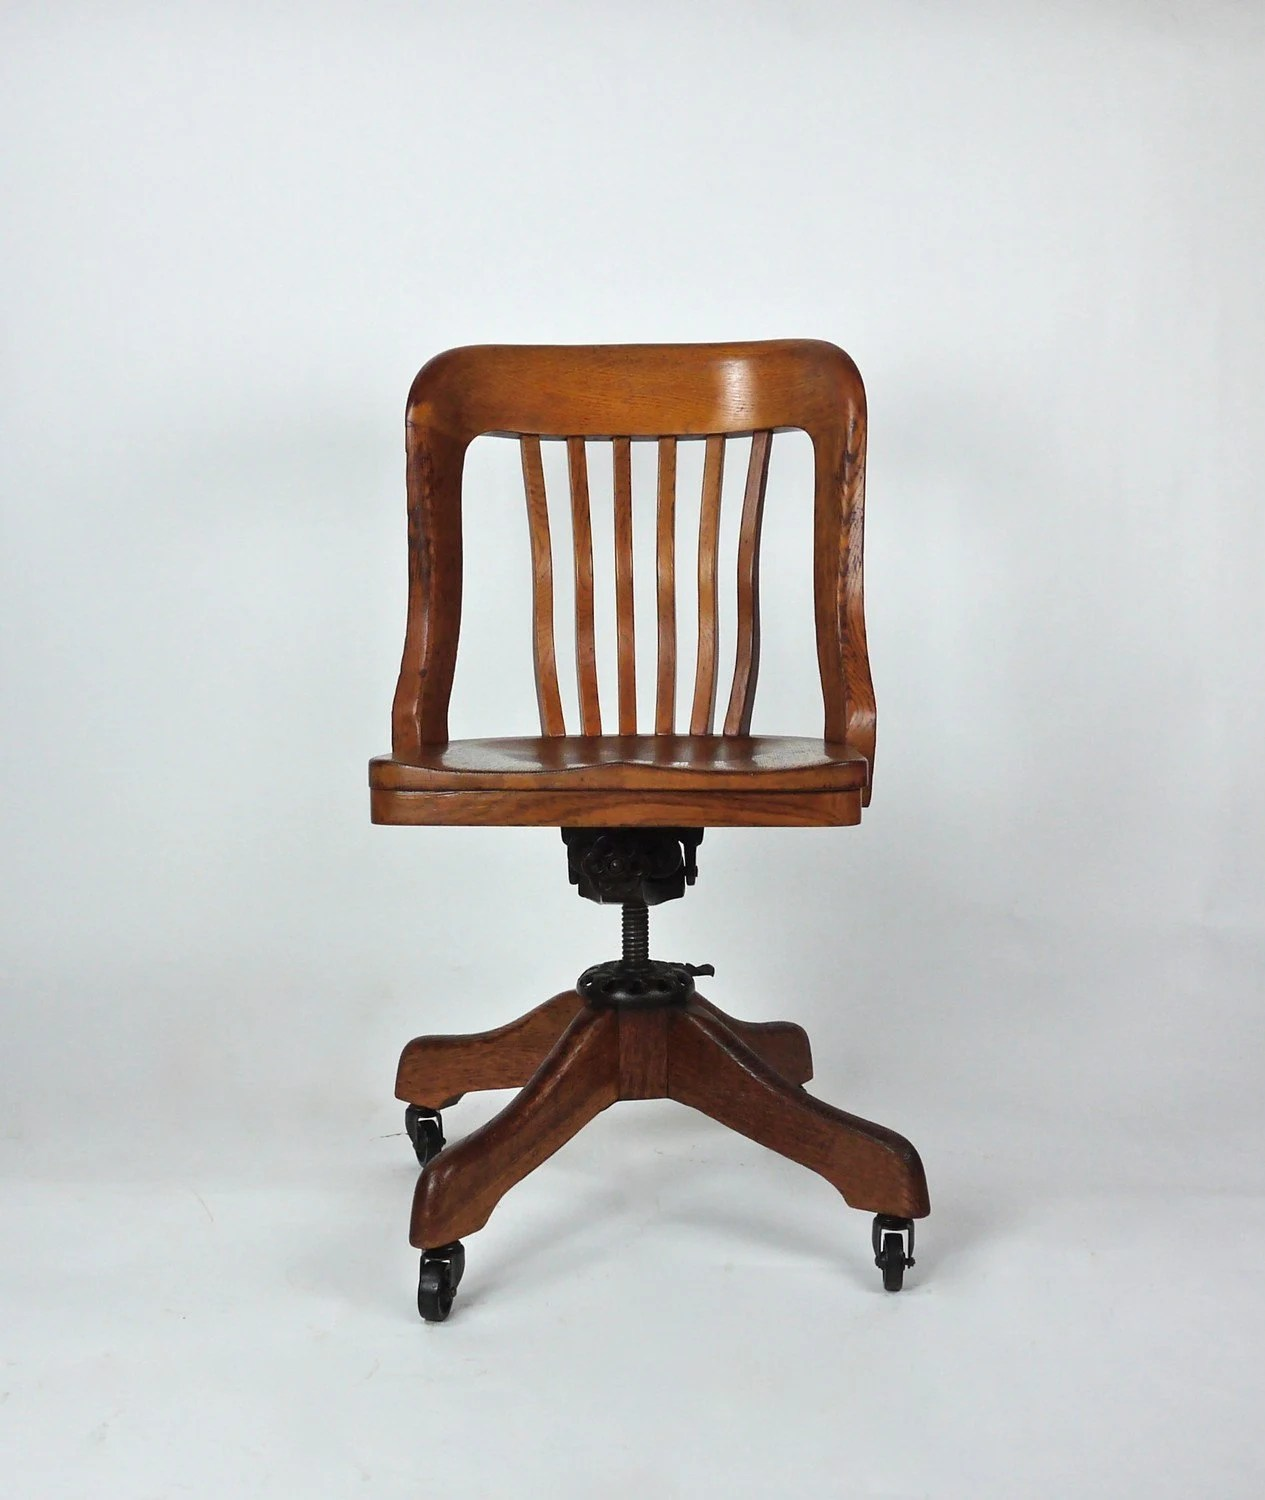 swivel hunting chairs used dining room table and antique milwaukee chair co oak deco desk office by dailymemorandum